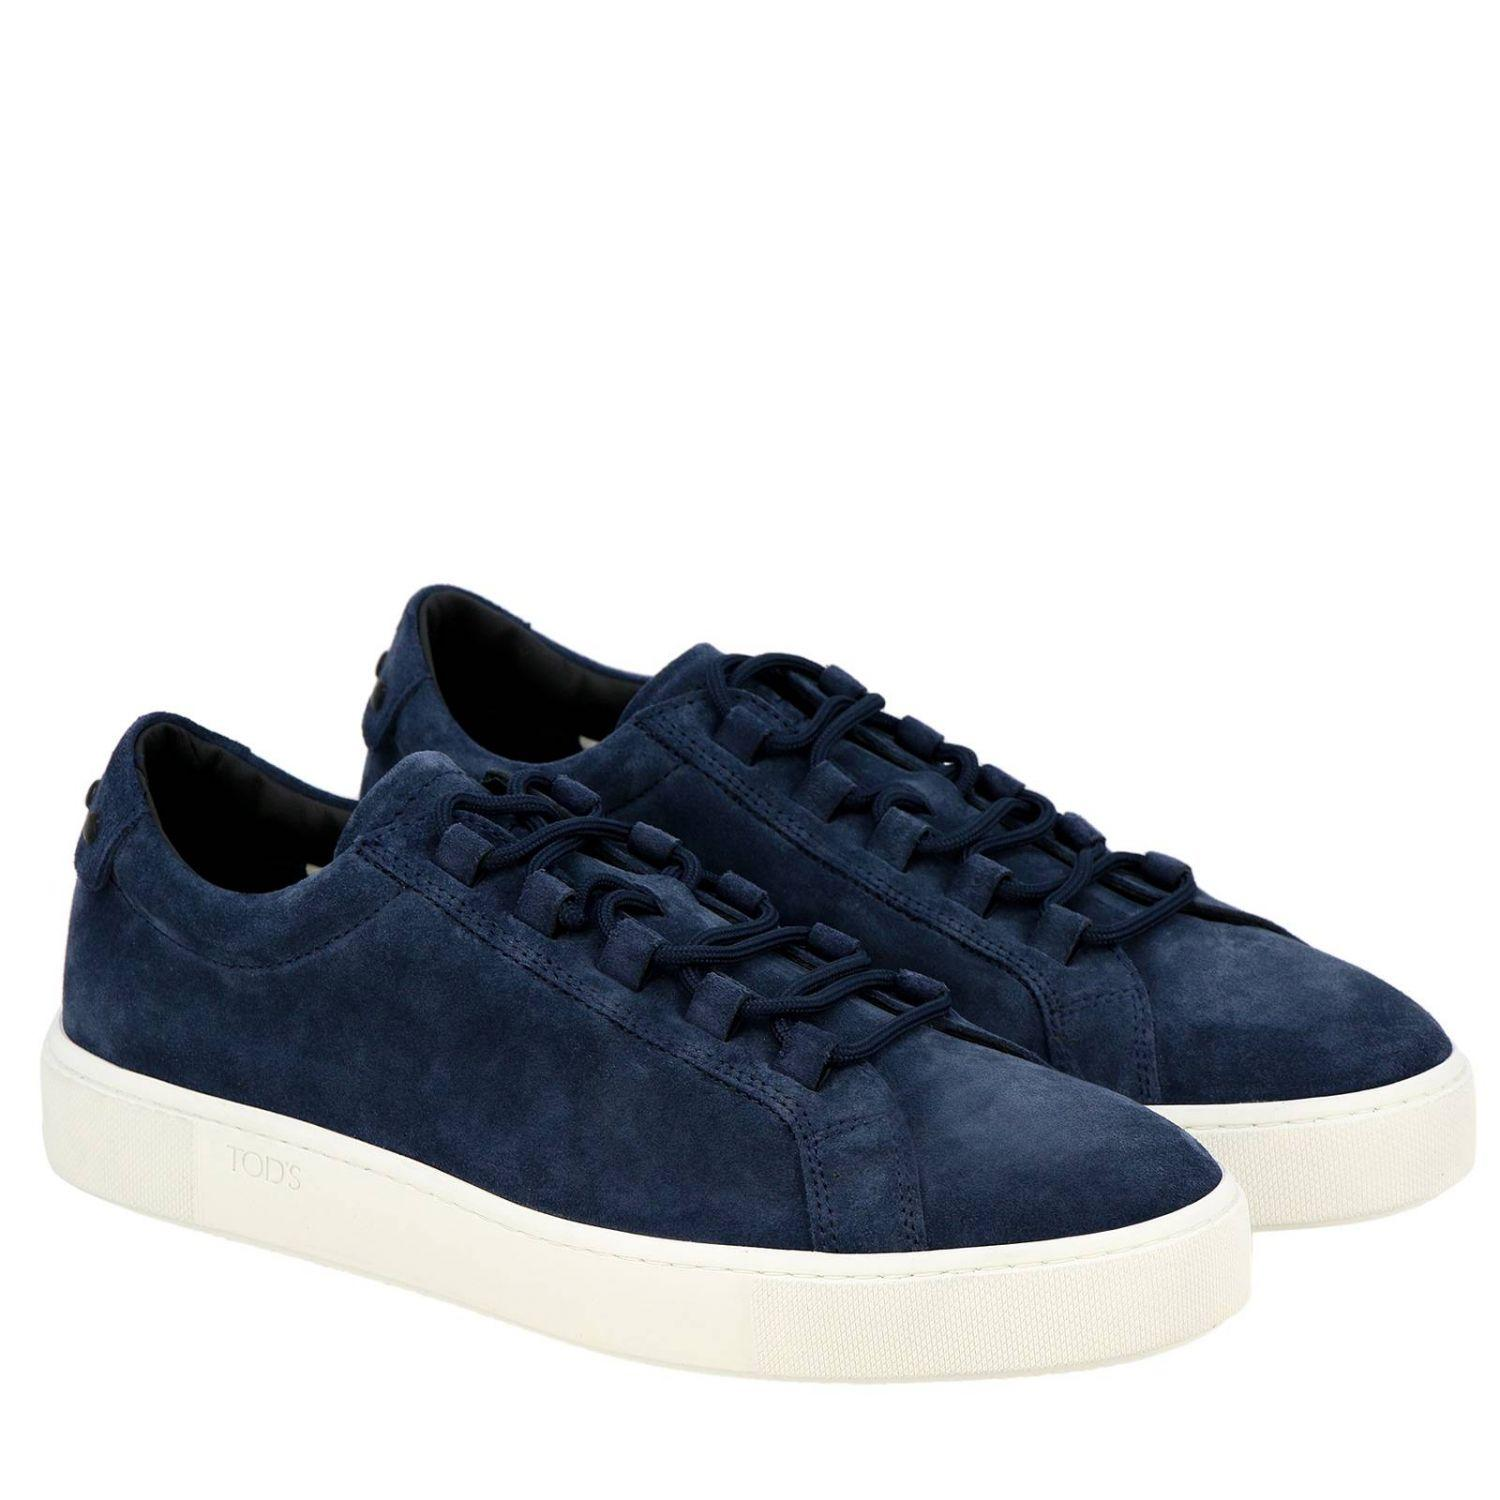 f10db382 Tod's - Blue Sneakers Shoes Men for Men - Lyst. View fullscreen